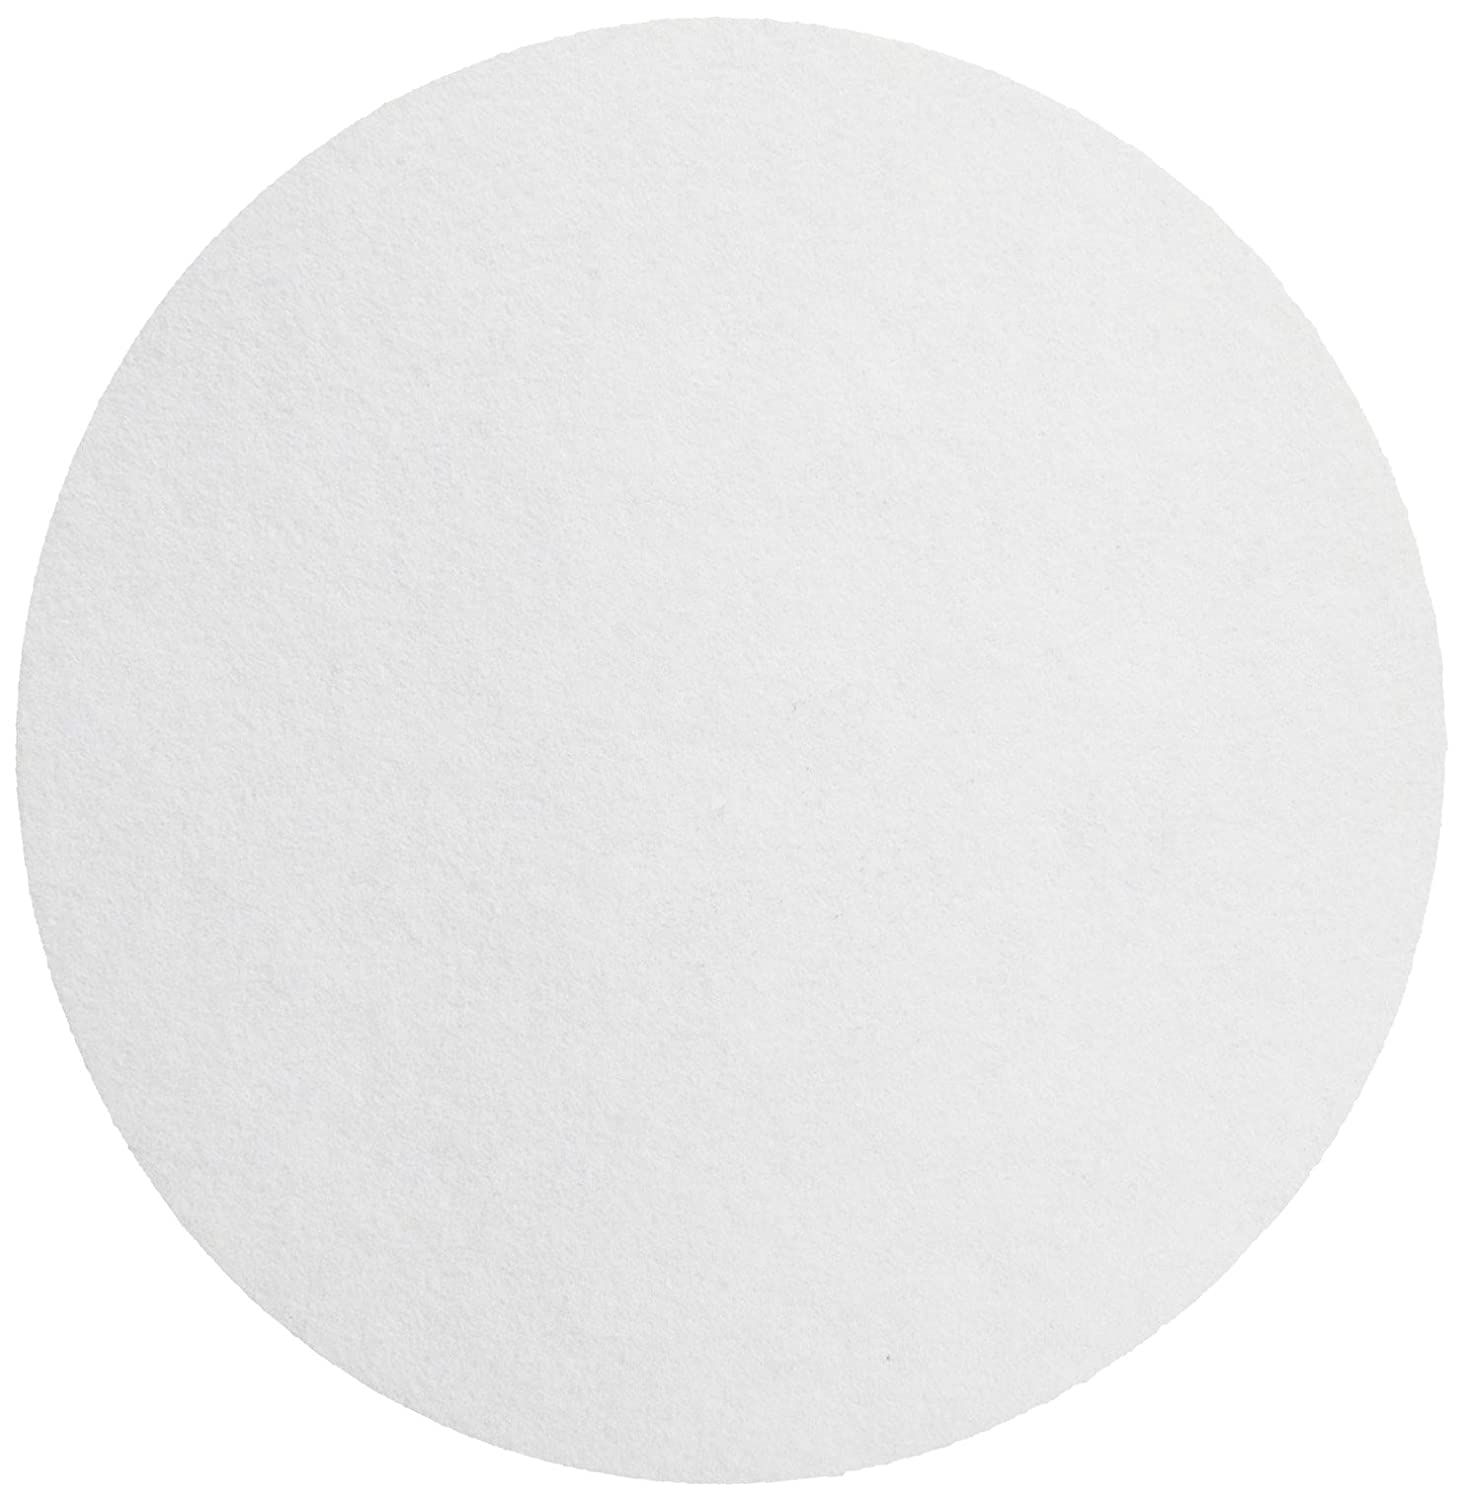 B00394FANQ Whatman 1441-060 Ashless Quantitative Filter Paper, 6.0cm Diameter, 20 Micron, Grade 41 (Pack of 100) 71lAPnnBnIL